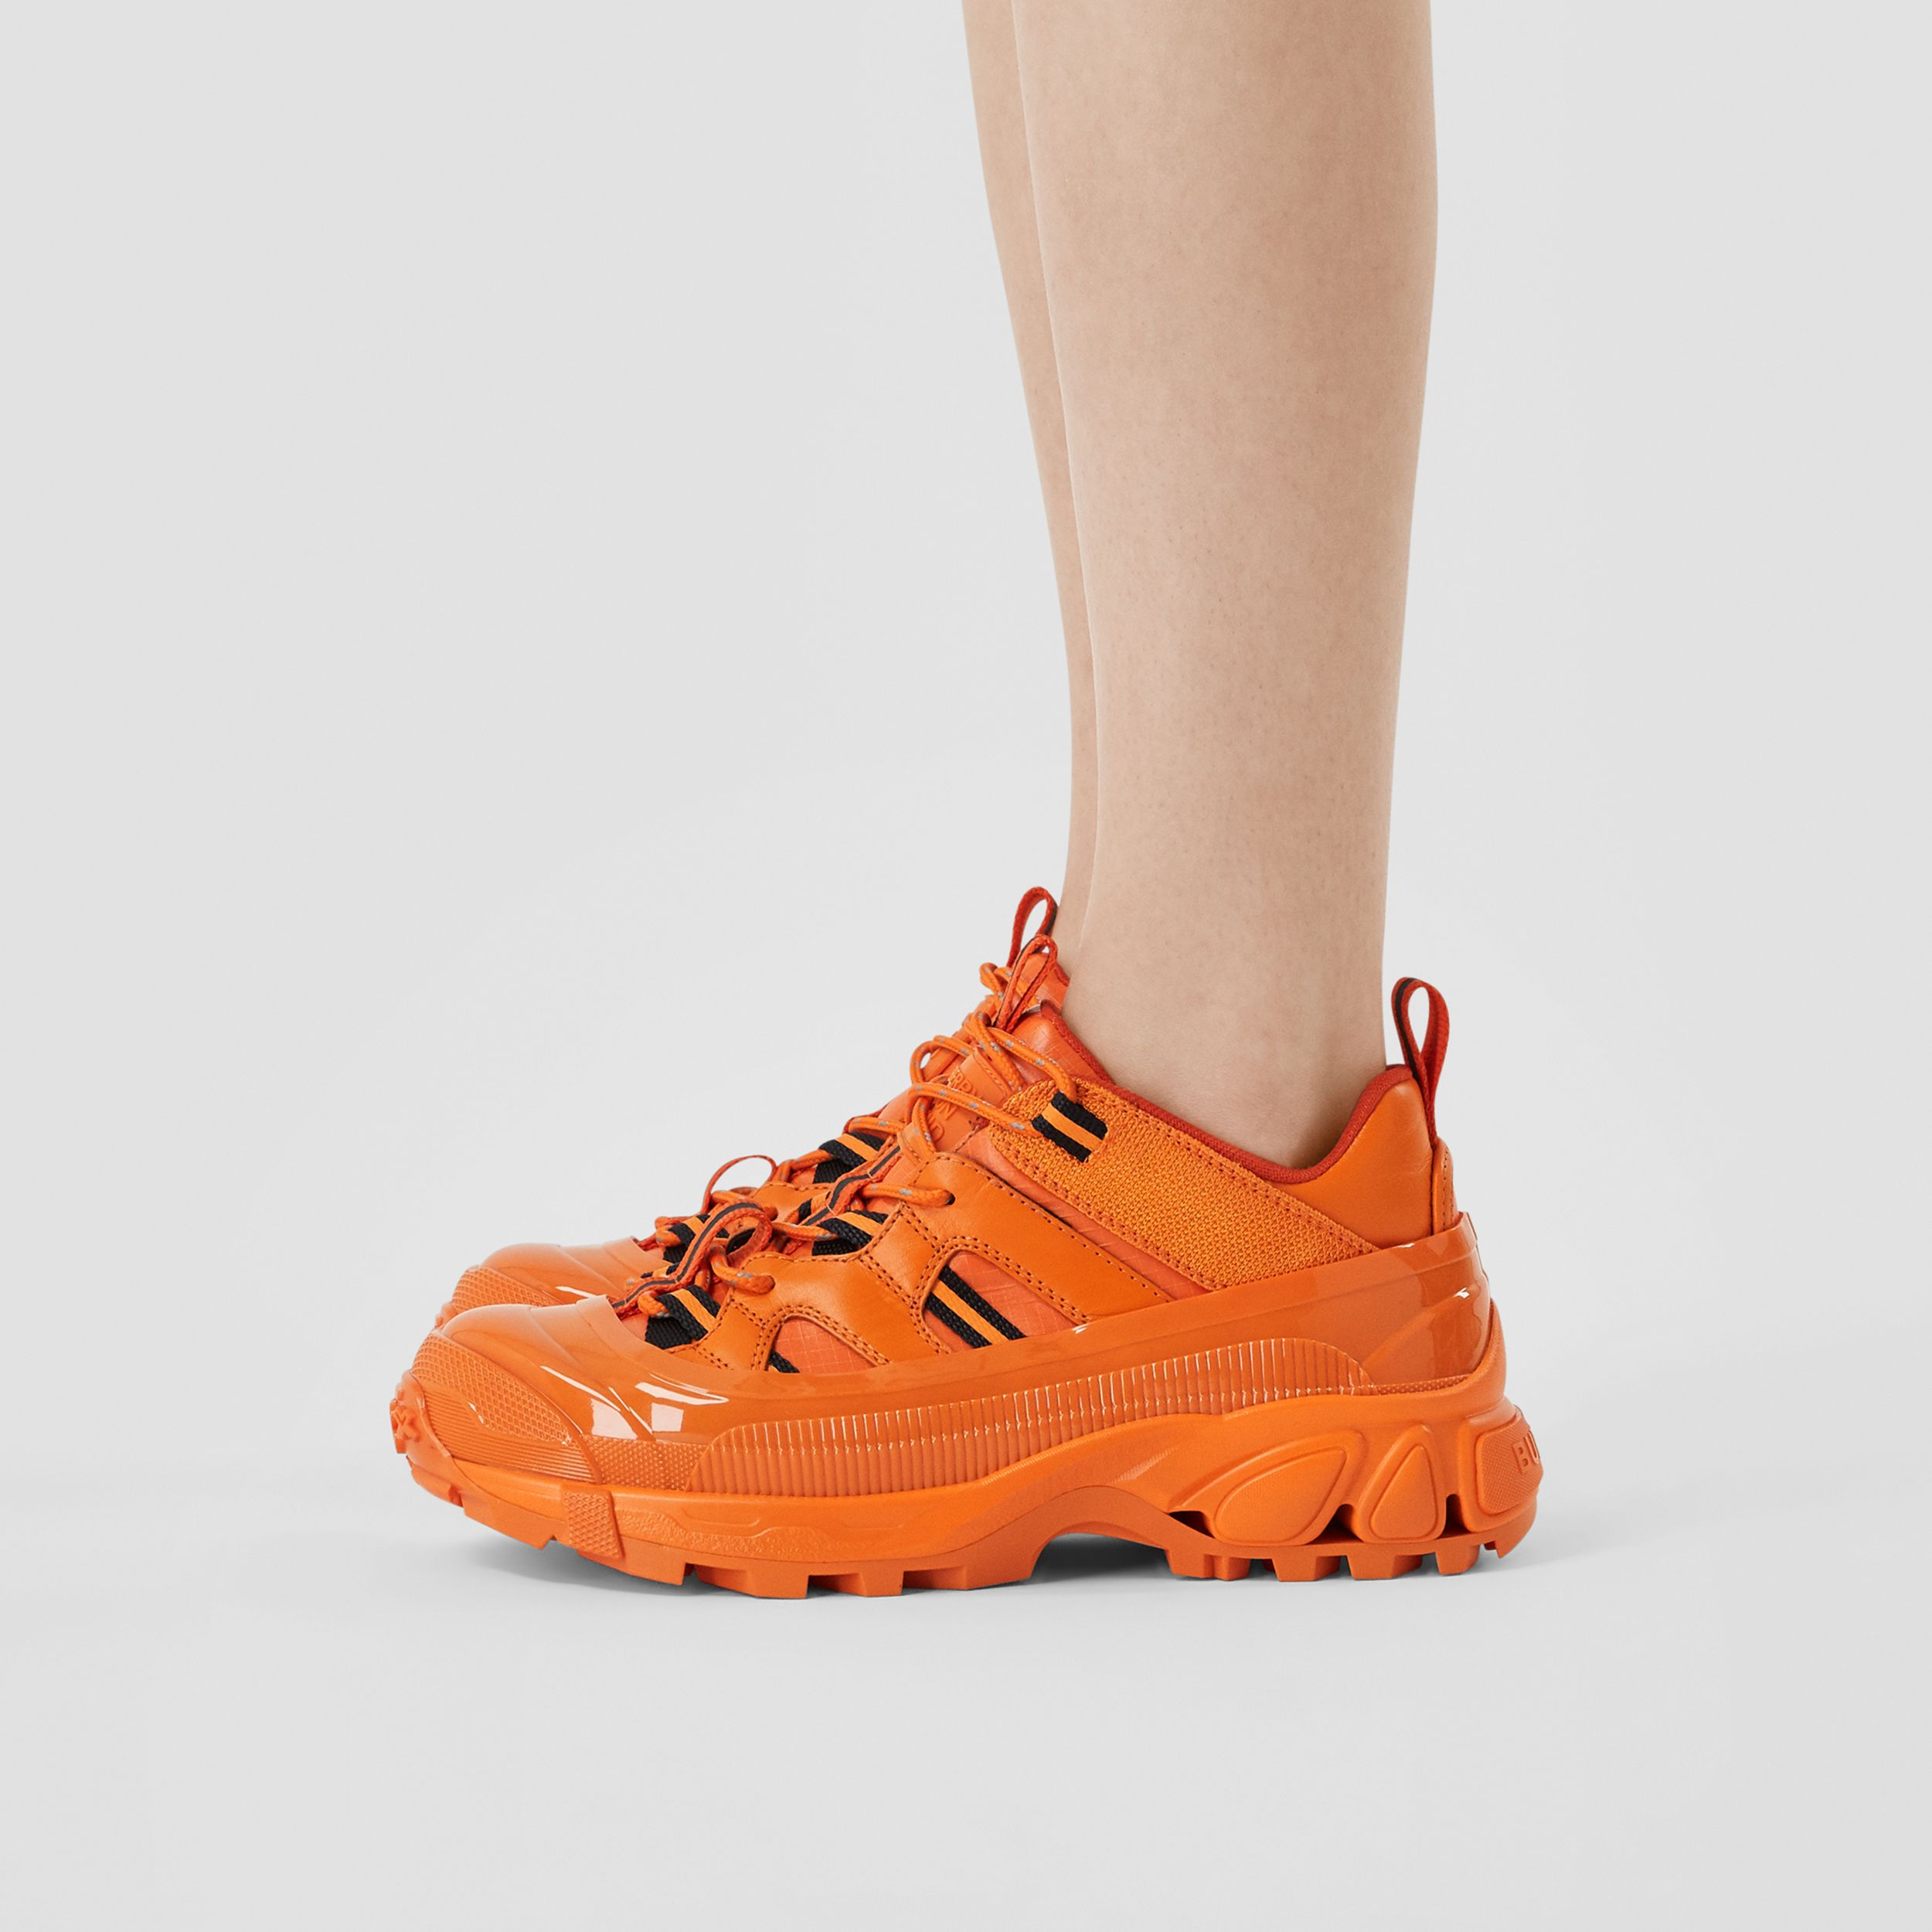 Leather and Nylon Arthur Sneakers in Bright Orange - Women | Burberry - 3